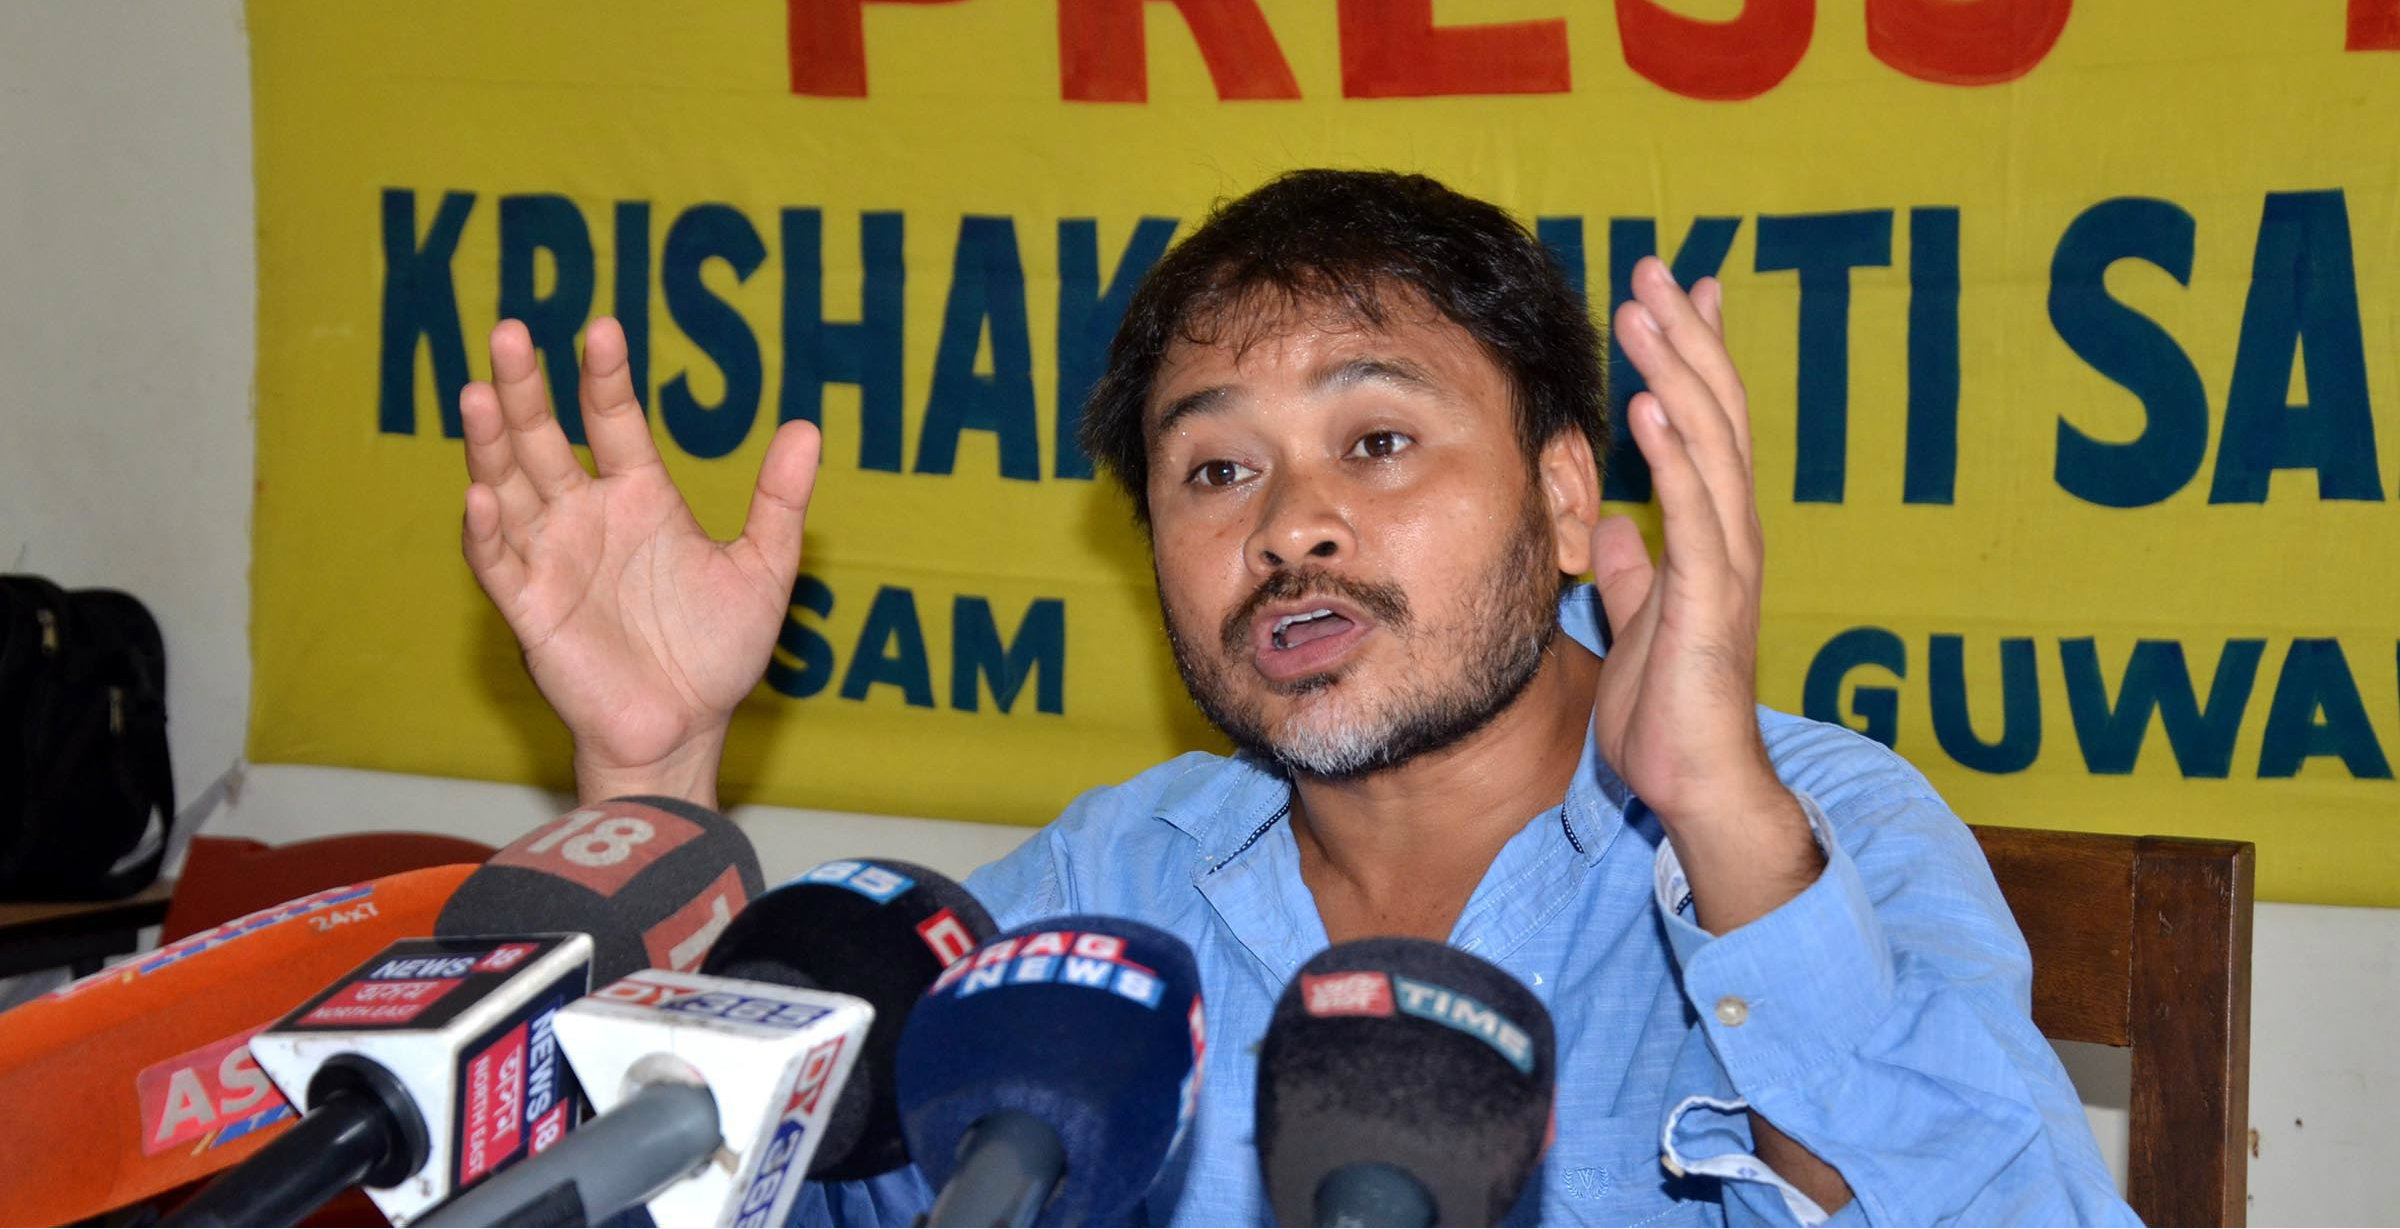 Akhil Gogoi is part of a civil society group called 'Nagarik Samaj', which is protesting against the bill.